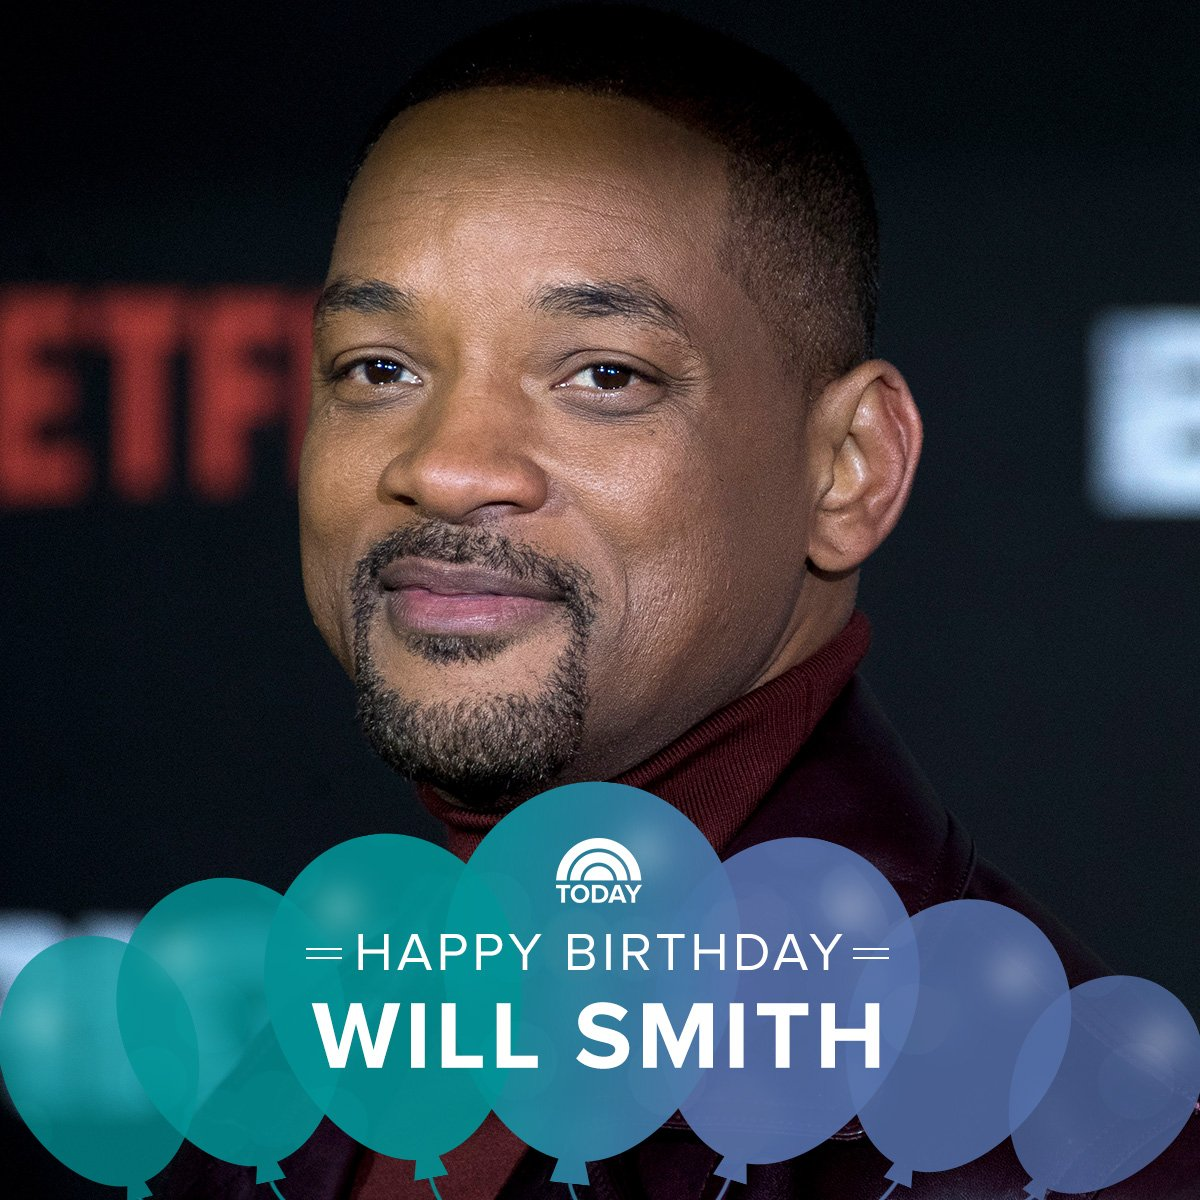 Get jiggy with it! Happy 50th birthday, Will Smith.